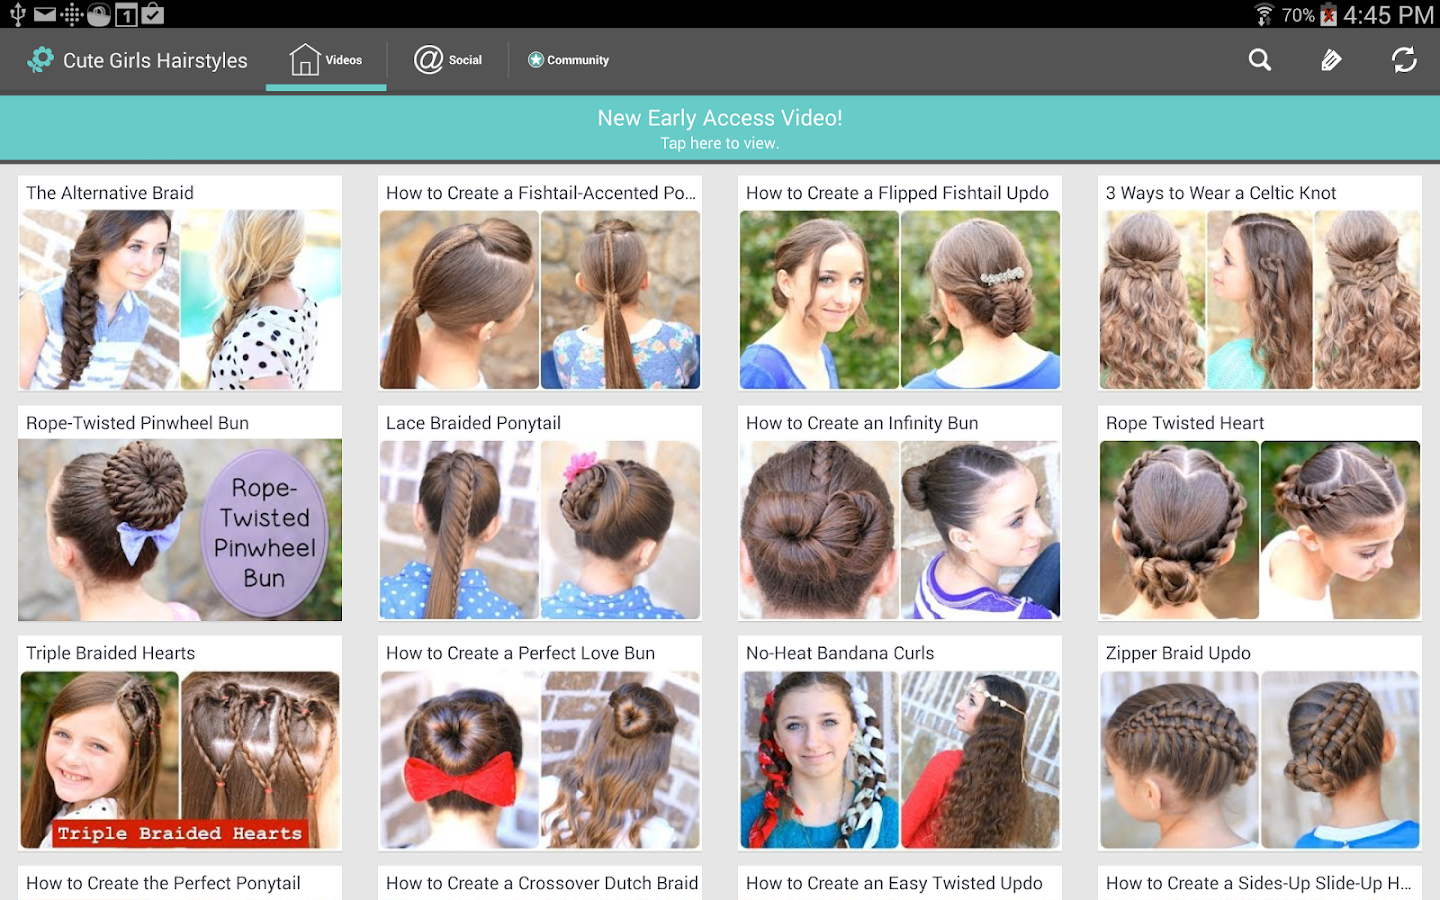 Wondrous Cute Girls Hairstyles Android Apps On Google Play Hairstyles For Women Draintrainus